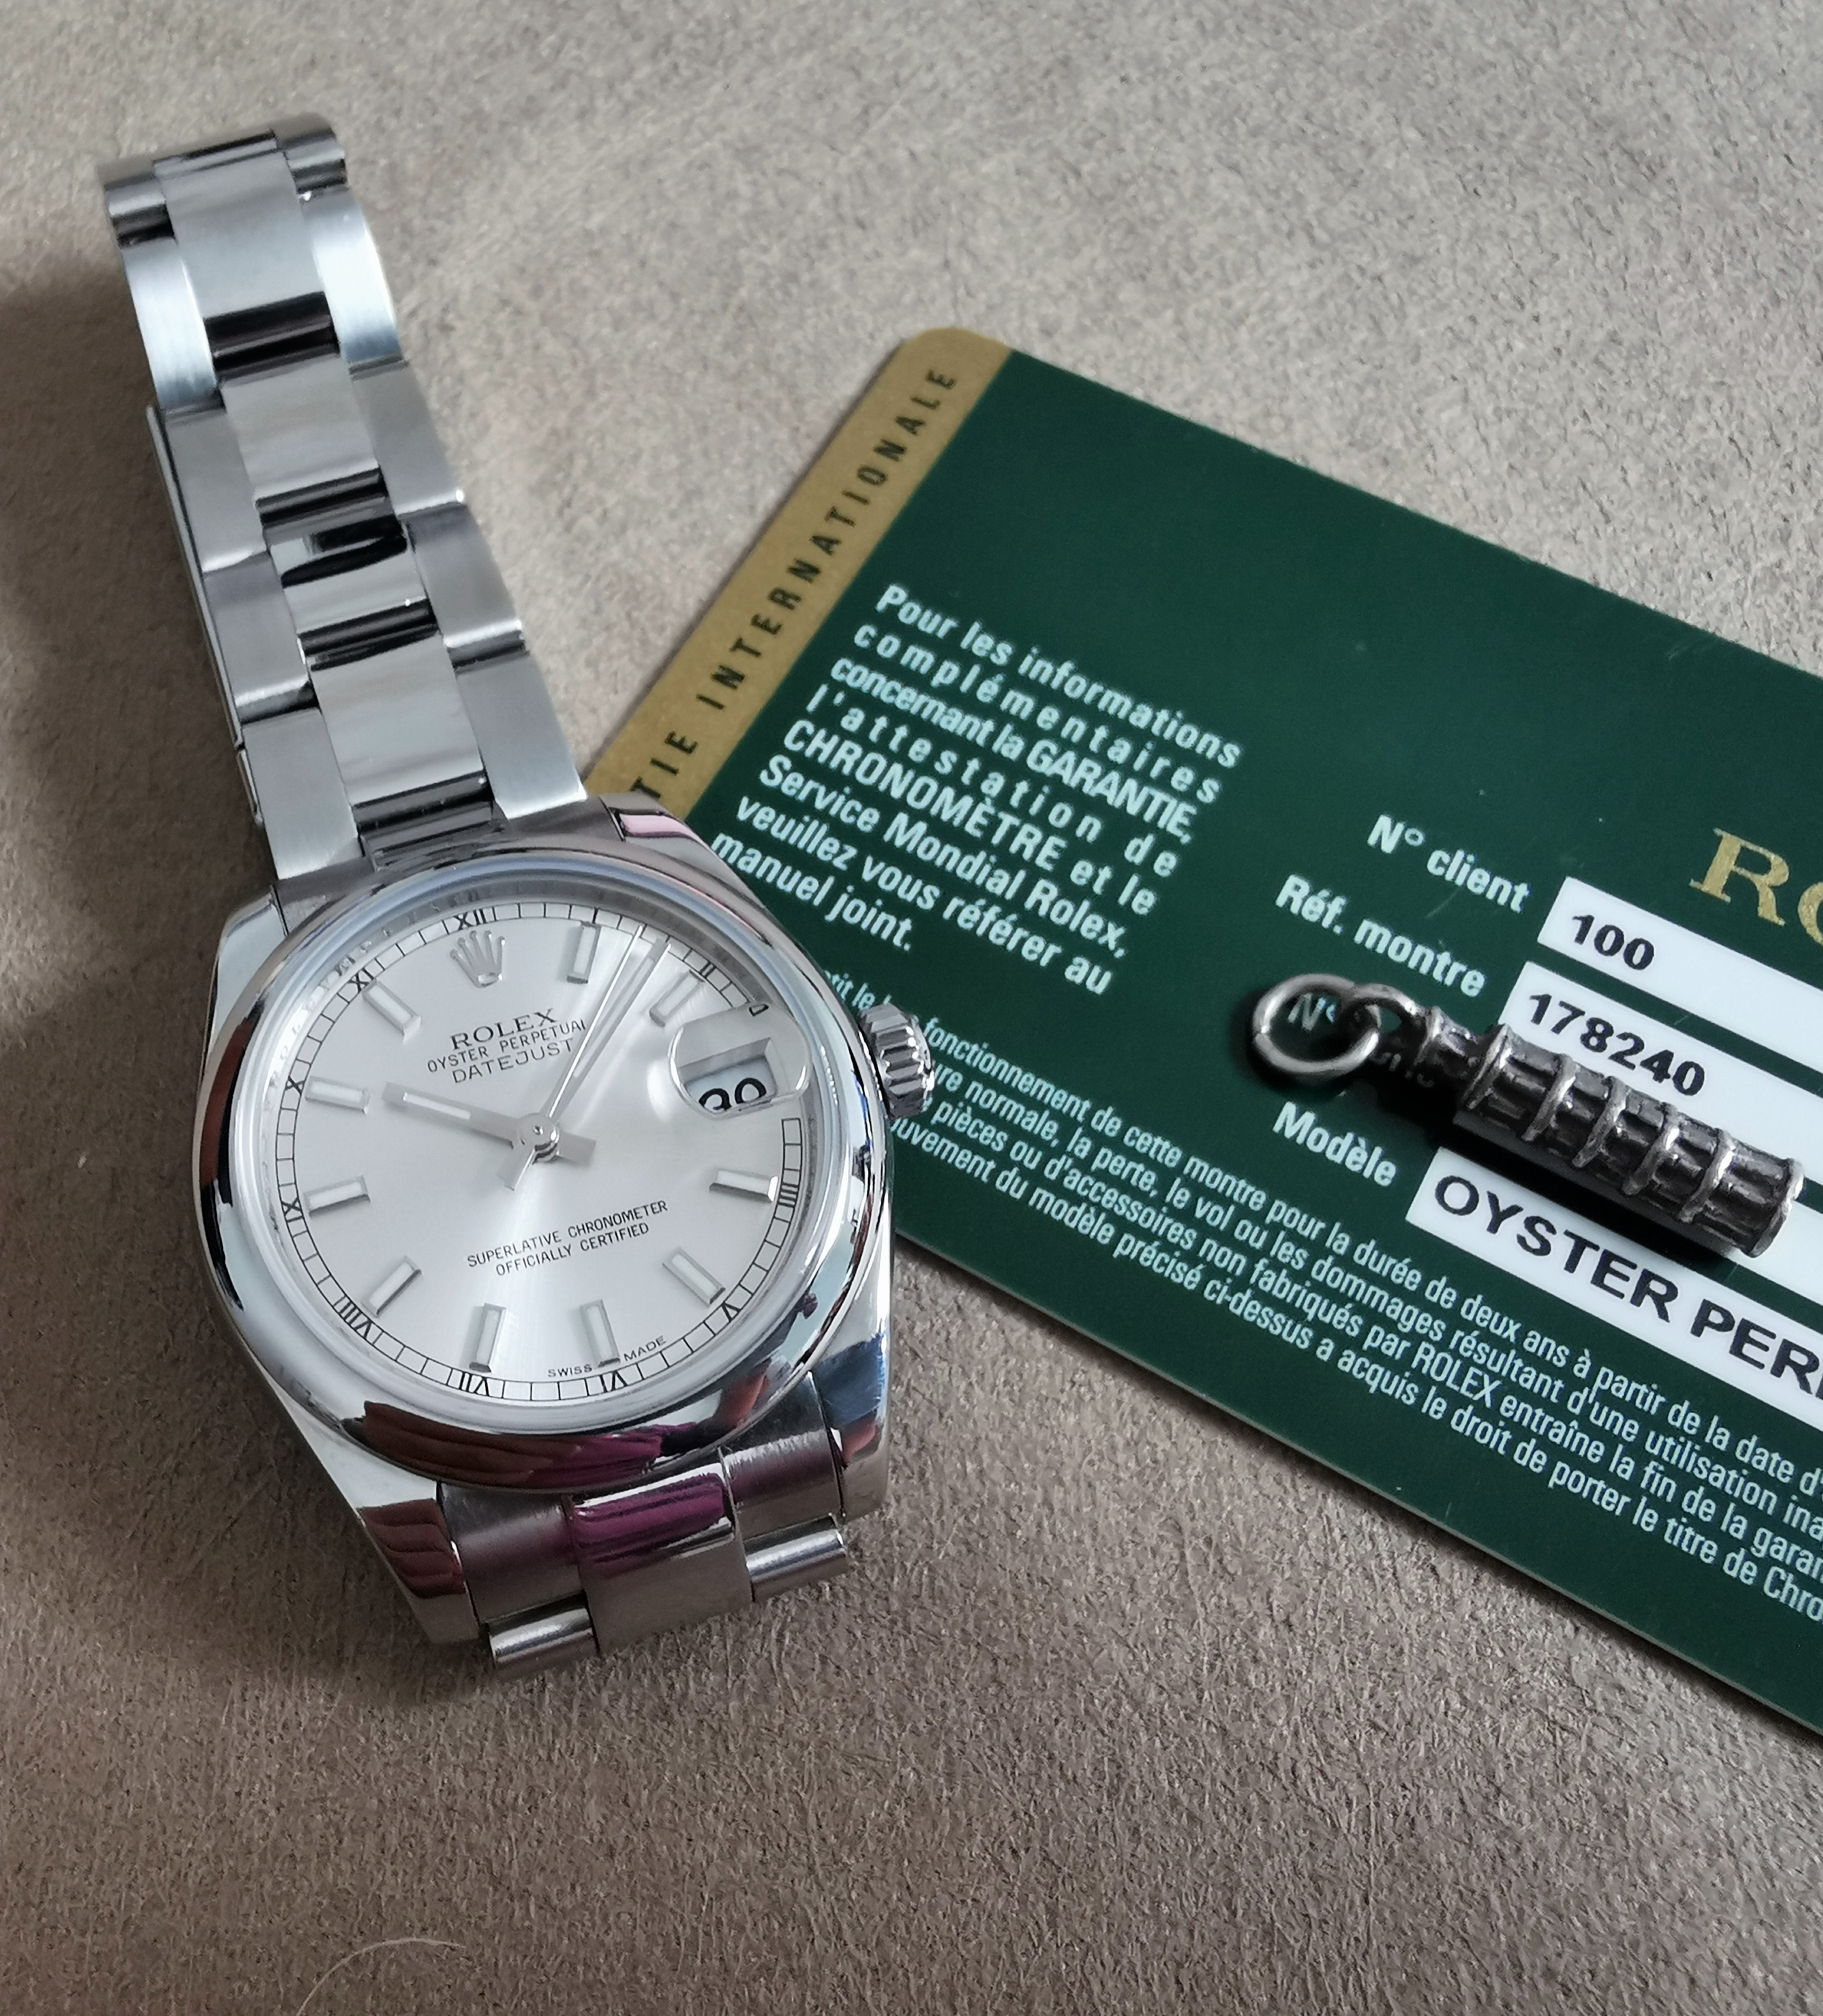 Rolex Datejust 178240 Datejust 31mm Silver Dial Oyster Bracelet SS - 2012 | San Giorgio a Cremano